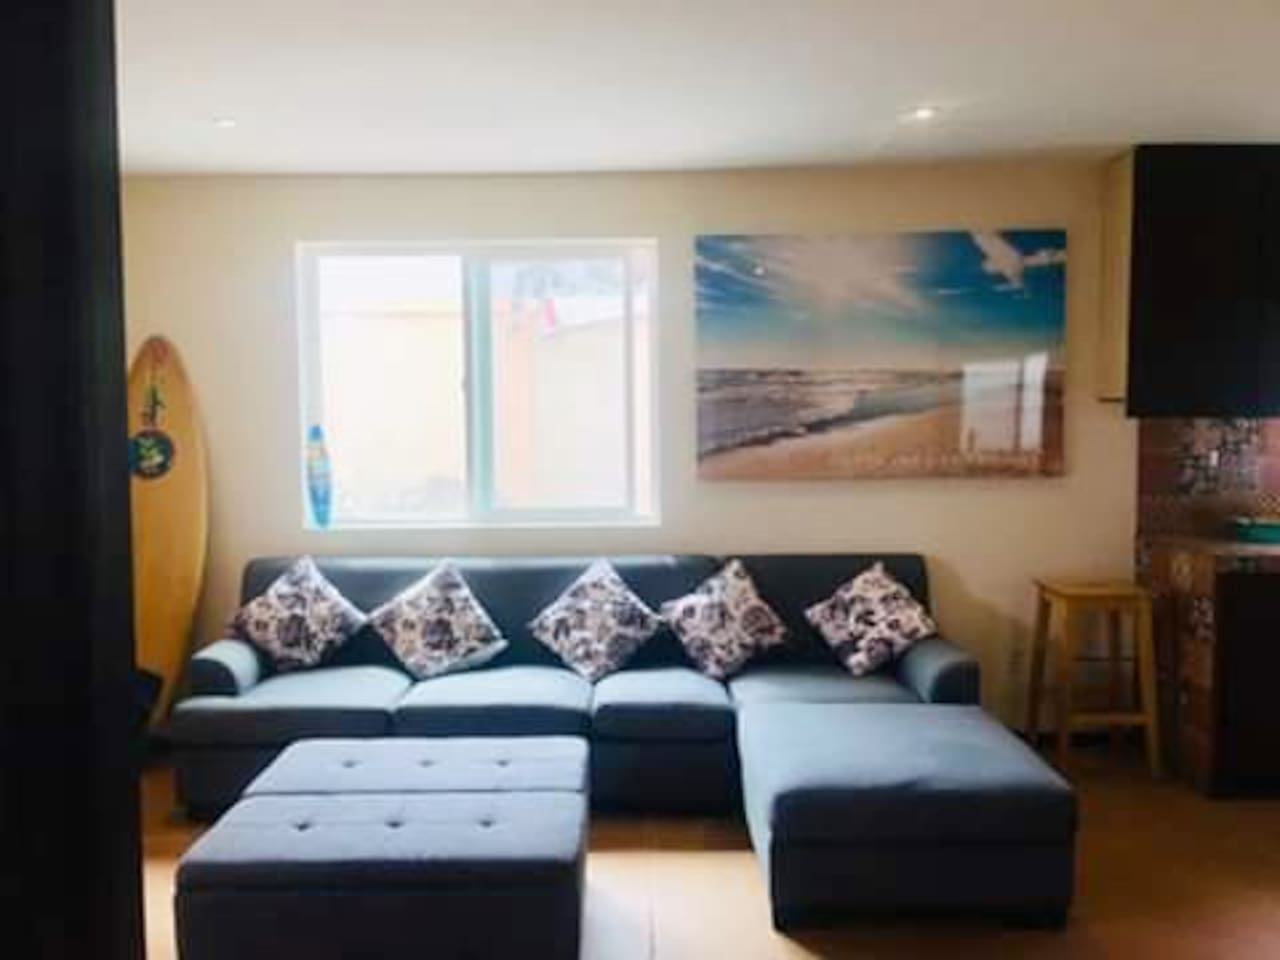 Large comfy couch perfect for entertaining, watching movies, or relaxing. Sleeps 1 adult and 1 small child- 2 Air mattresses also readily available to accommodate 2 extra guests